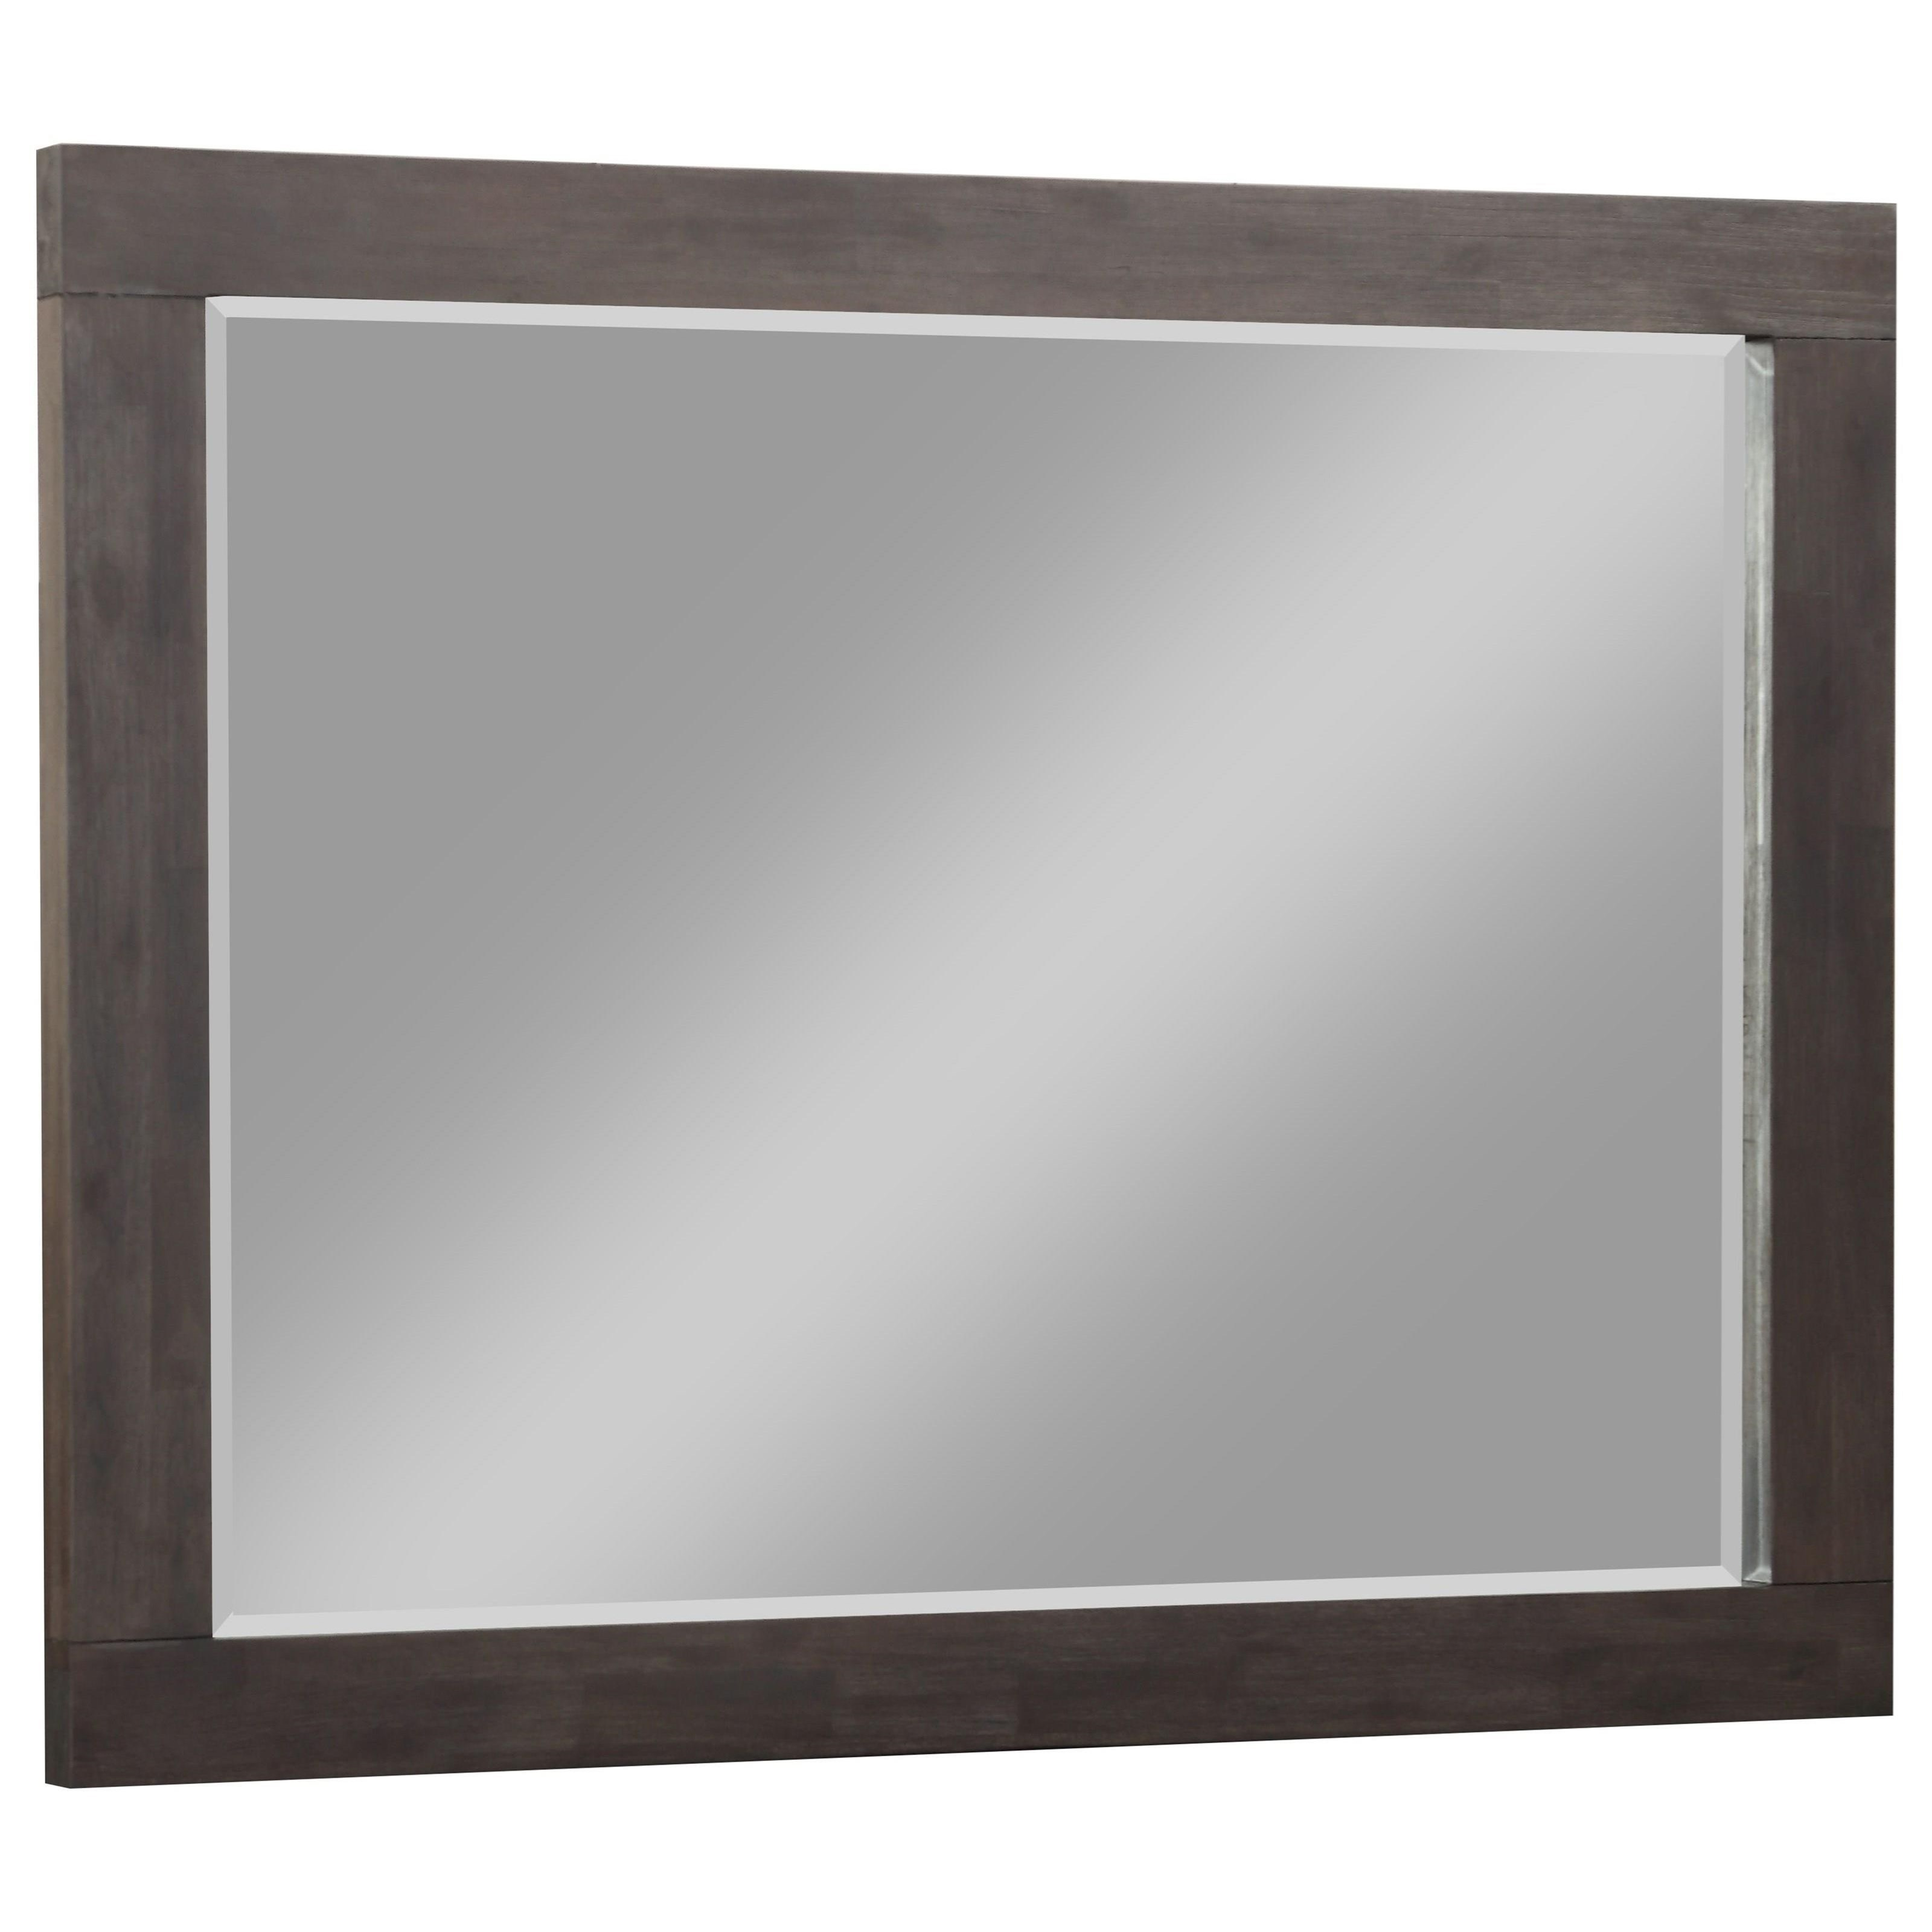 Heather Heather Mirror by Modus International at Morris Home